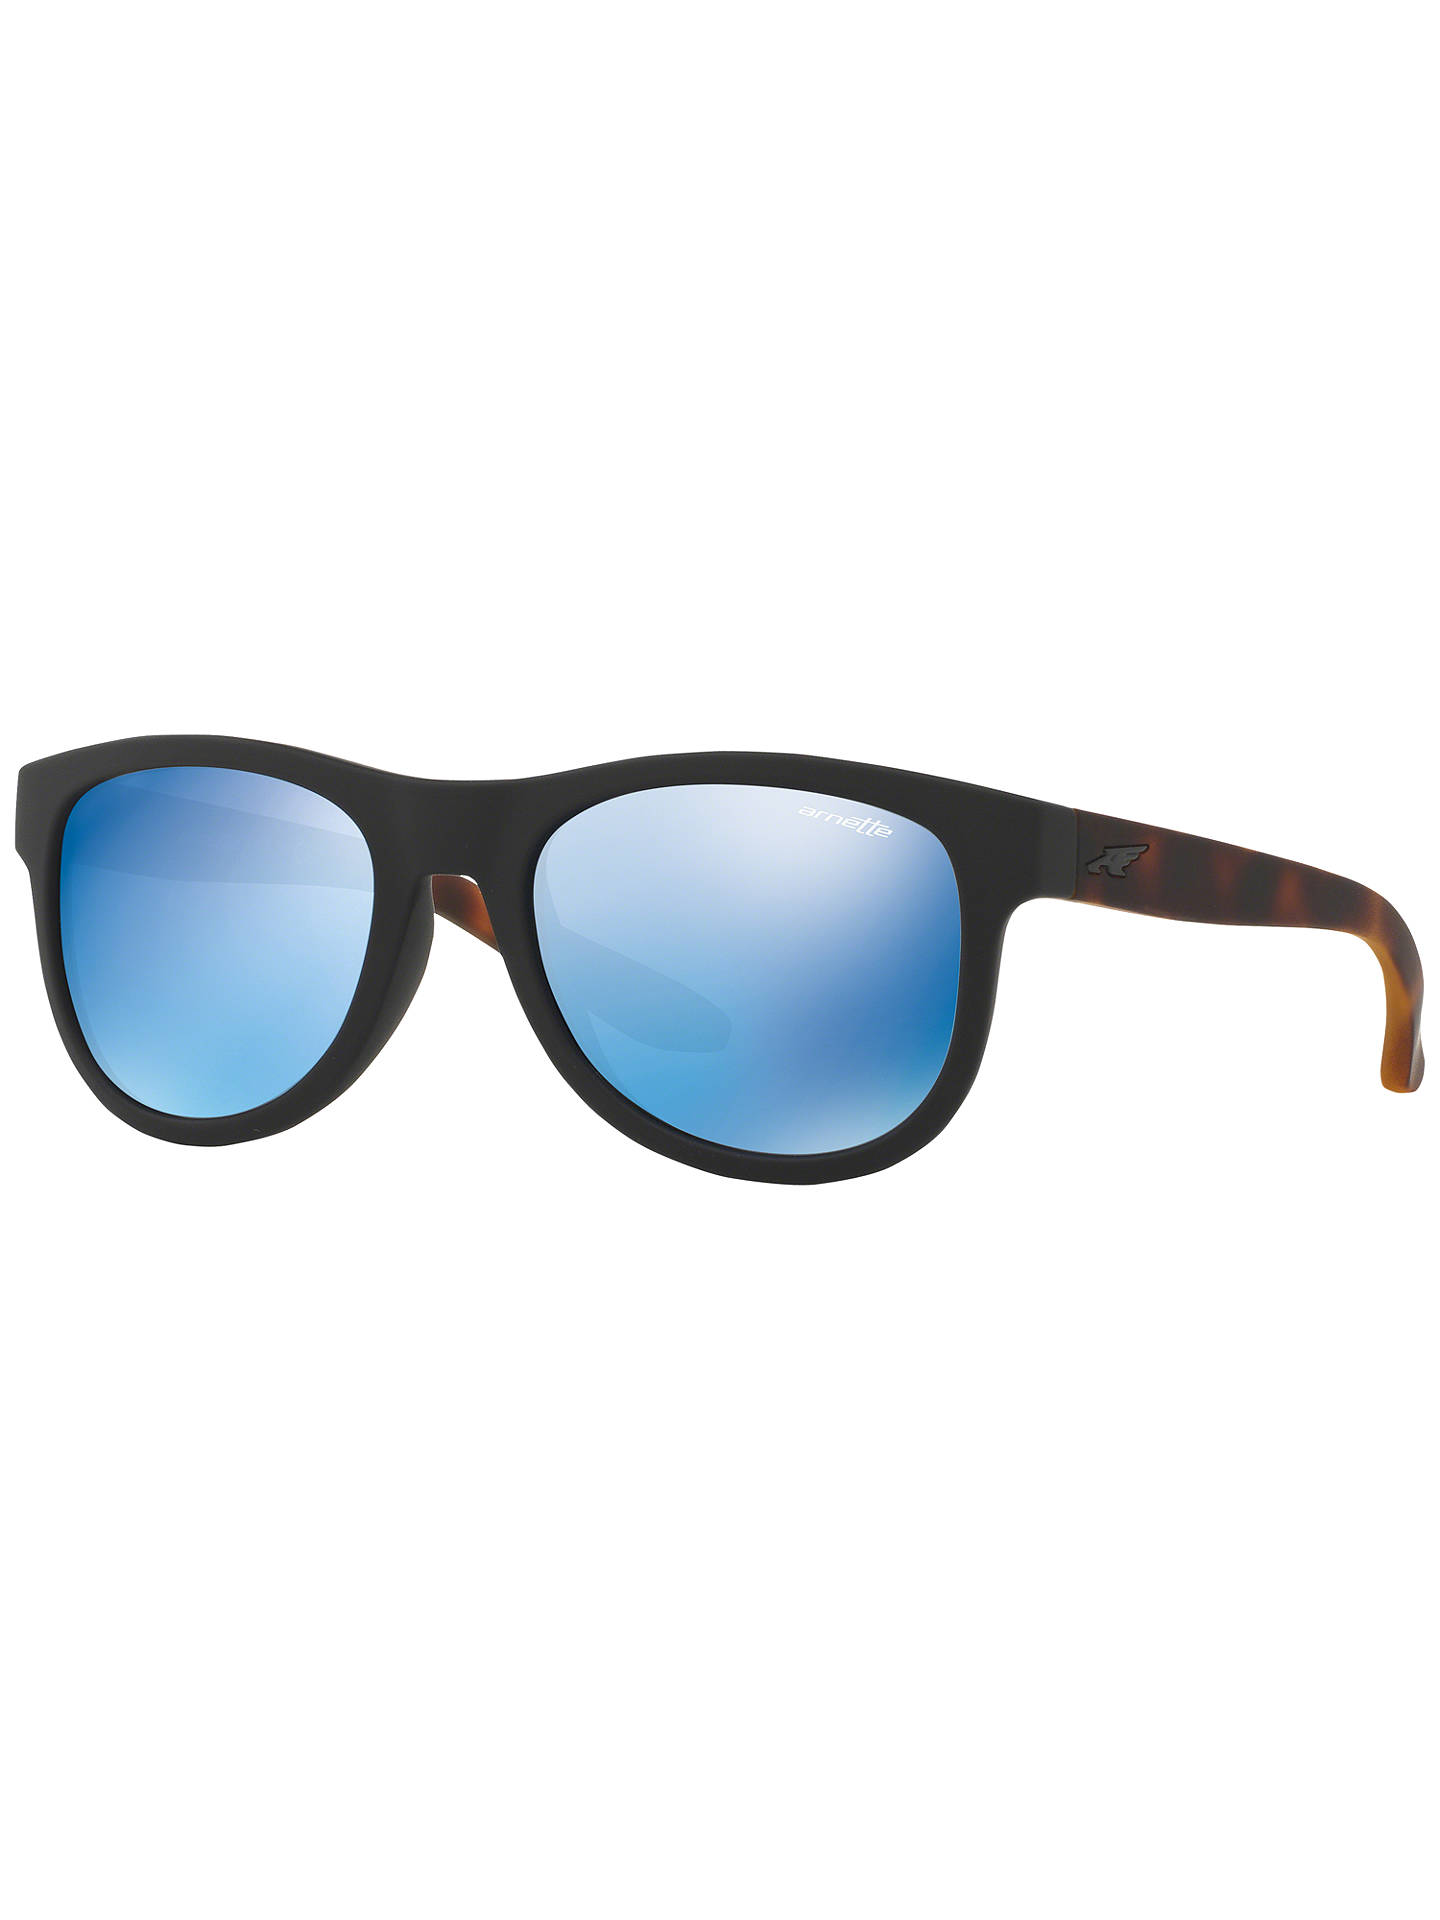 6a25a942b19c4 BuyArnette AN4222 Class Act Oval Sunglasses, Tortoise Blue Online at  johnlewis.com ...